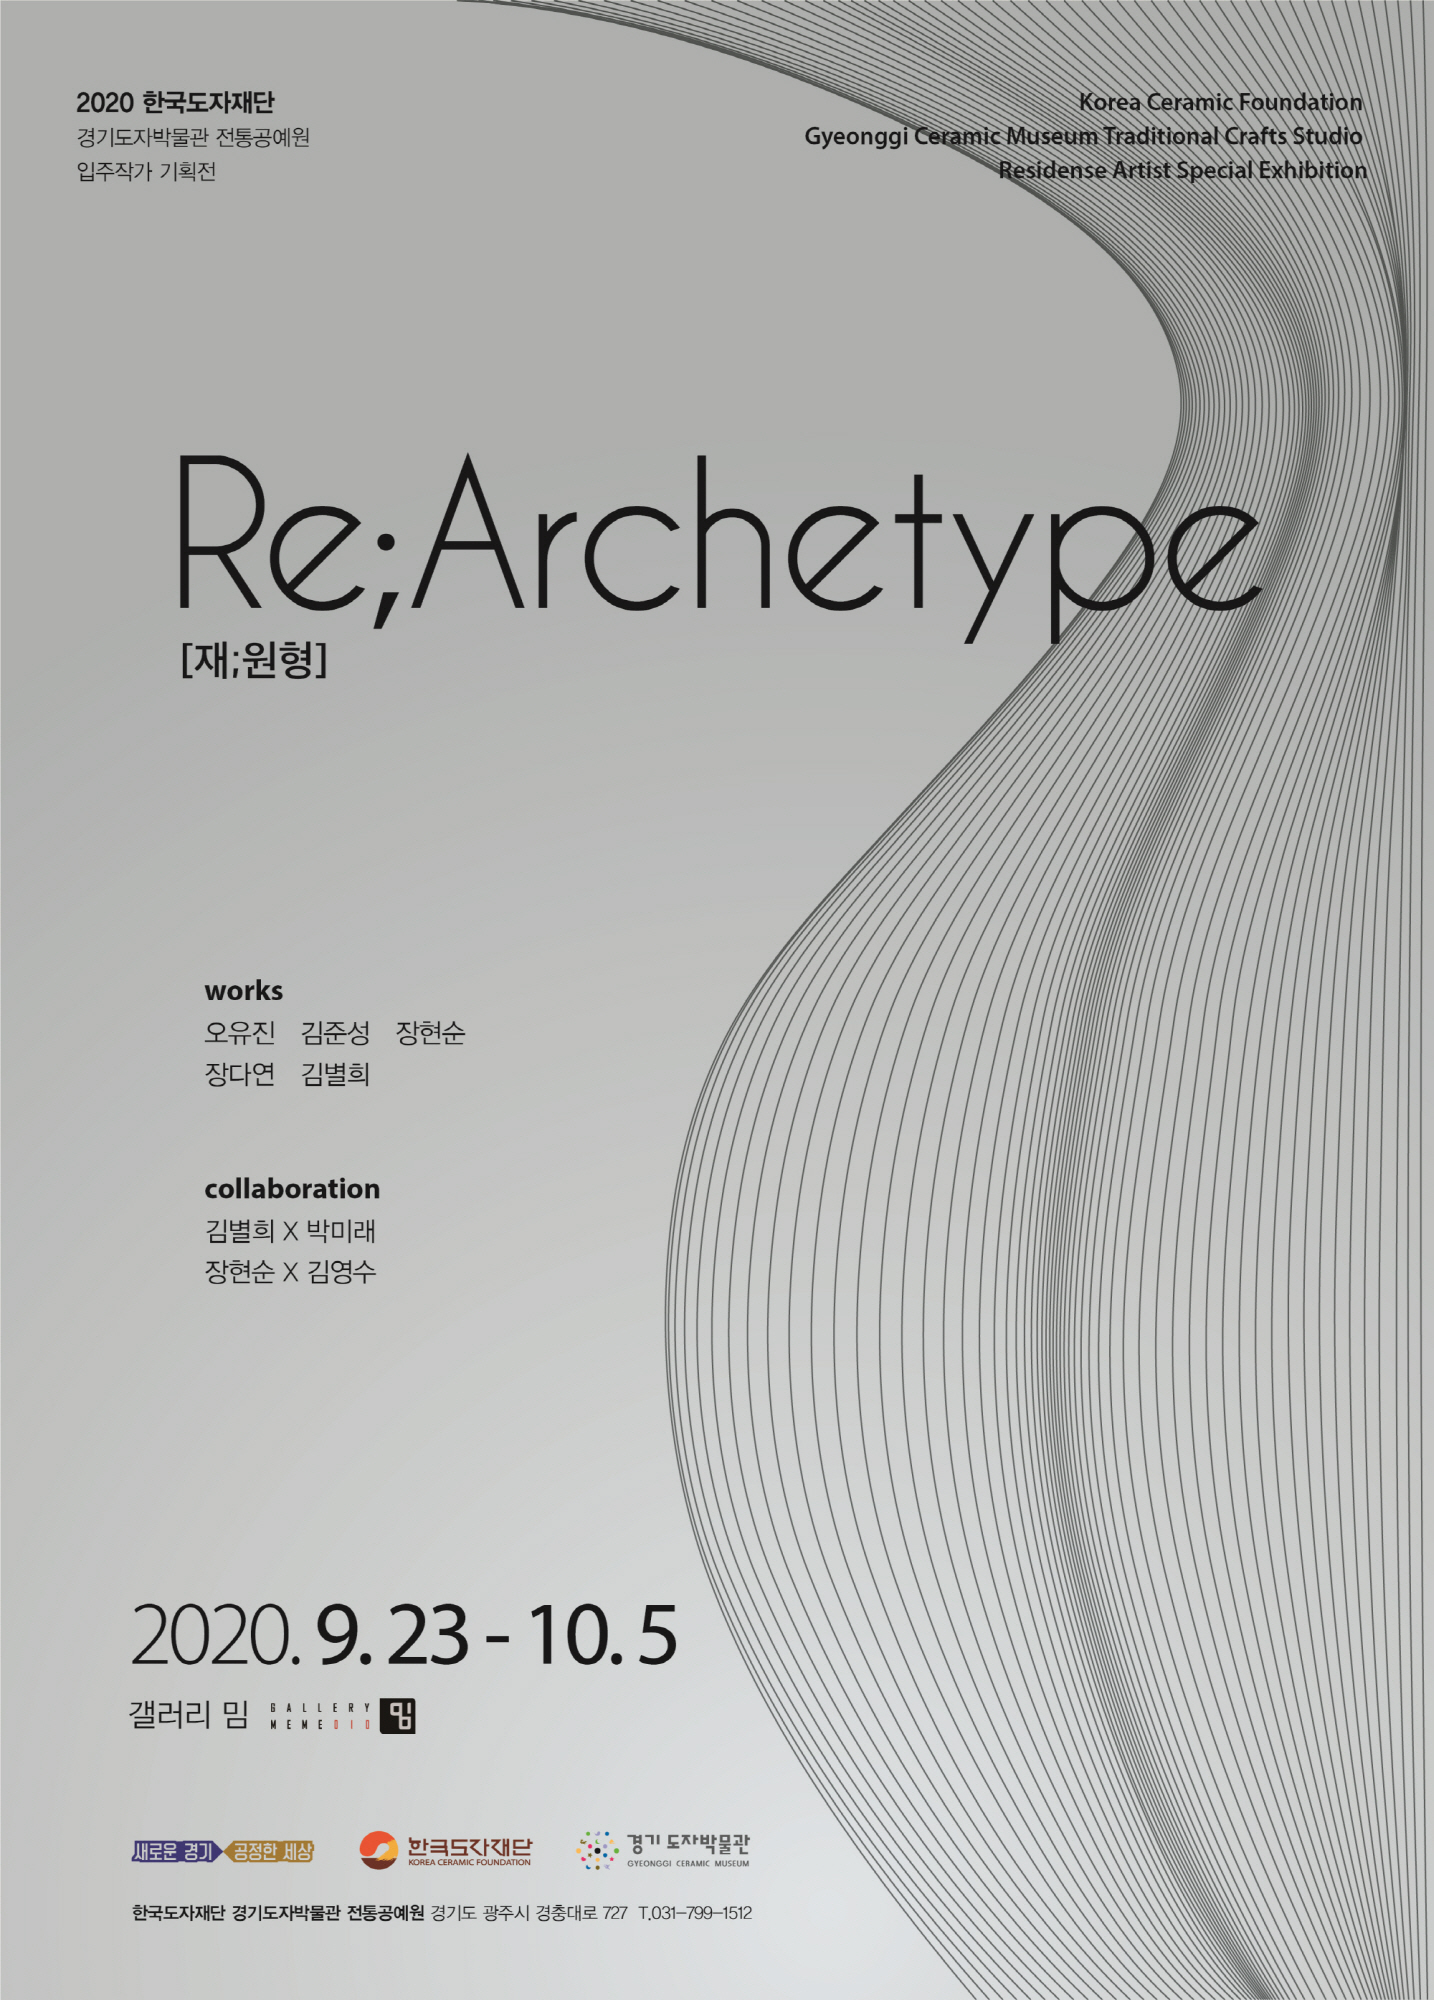 Re:Archetype